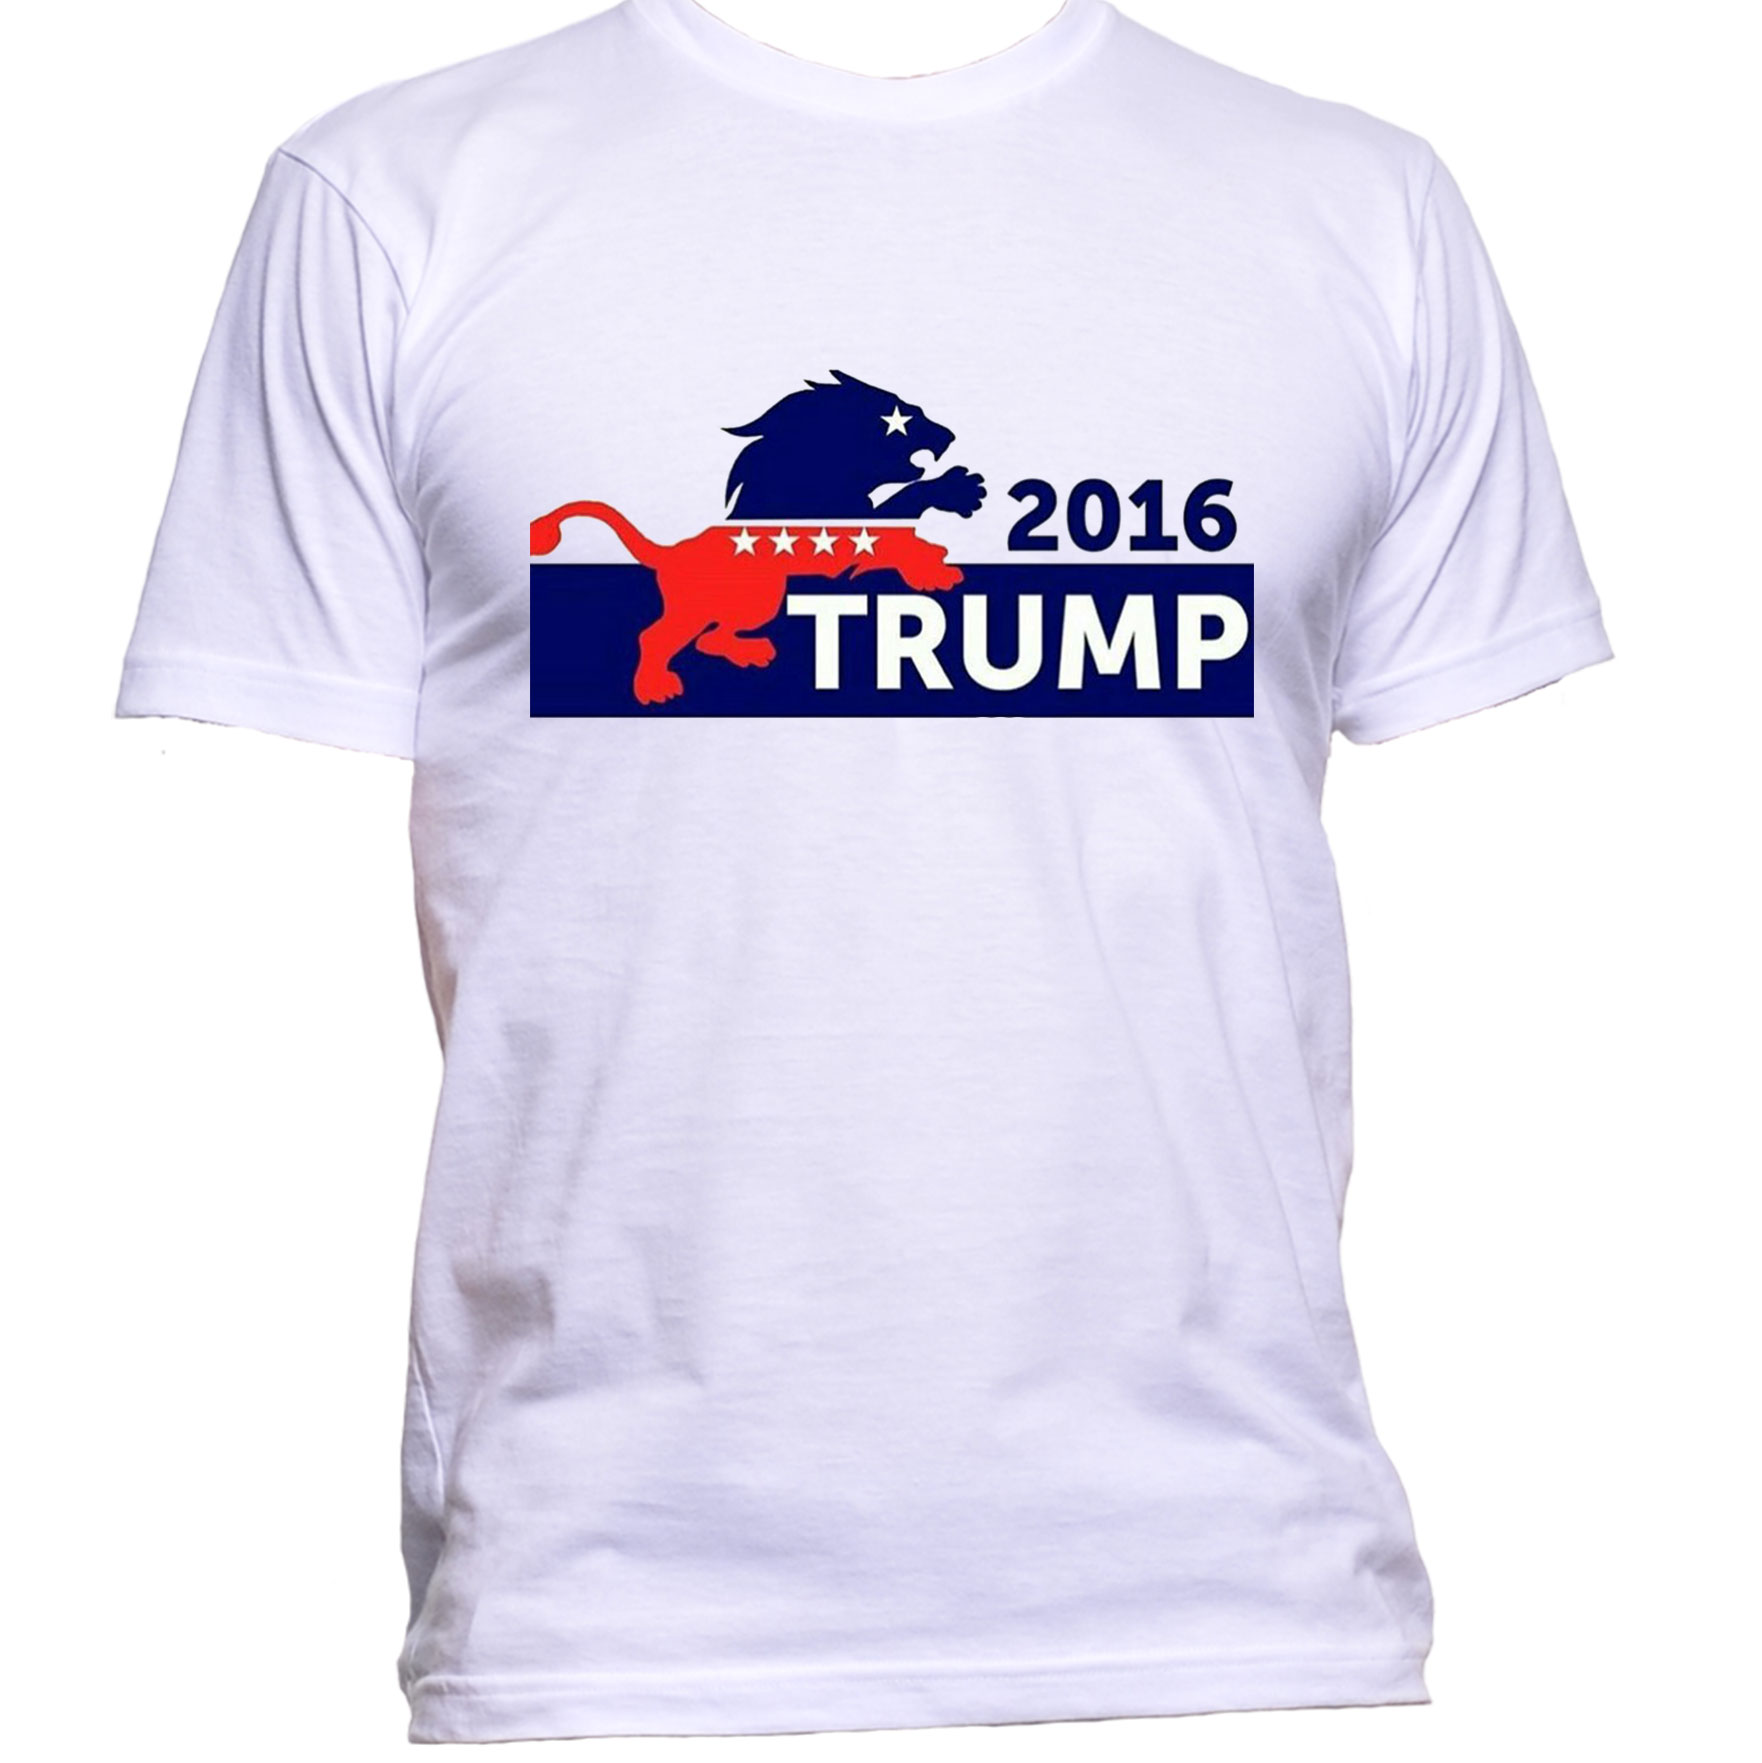 9a251516 Trump lion white tshirt gullprint small